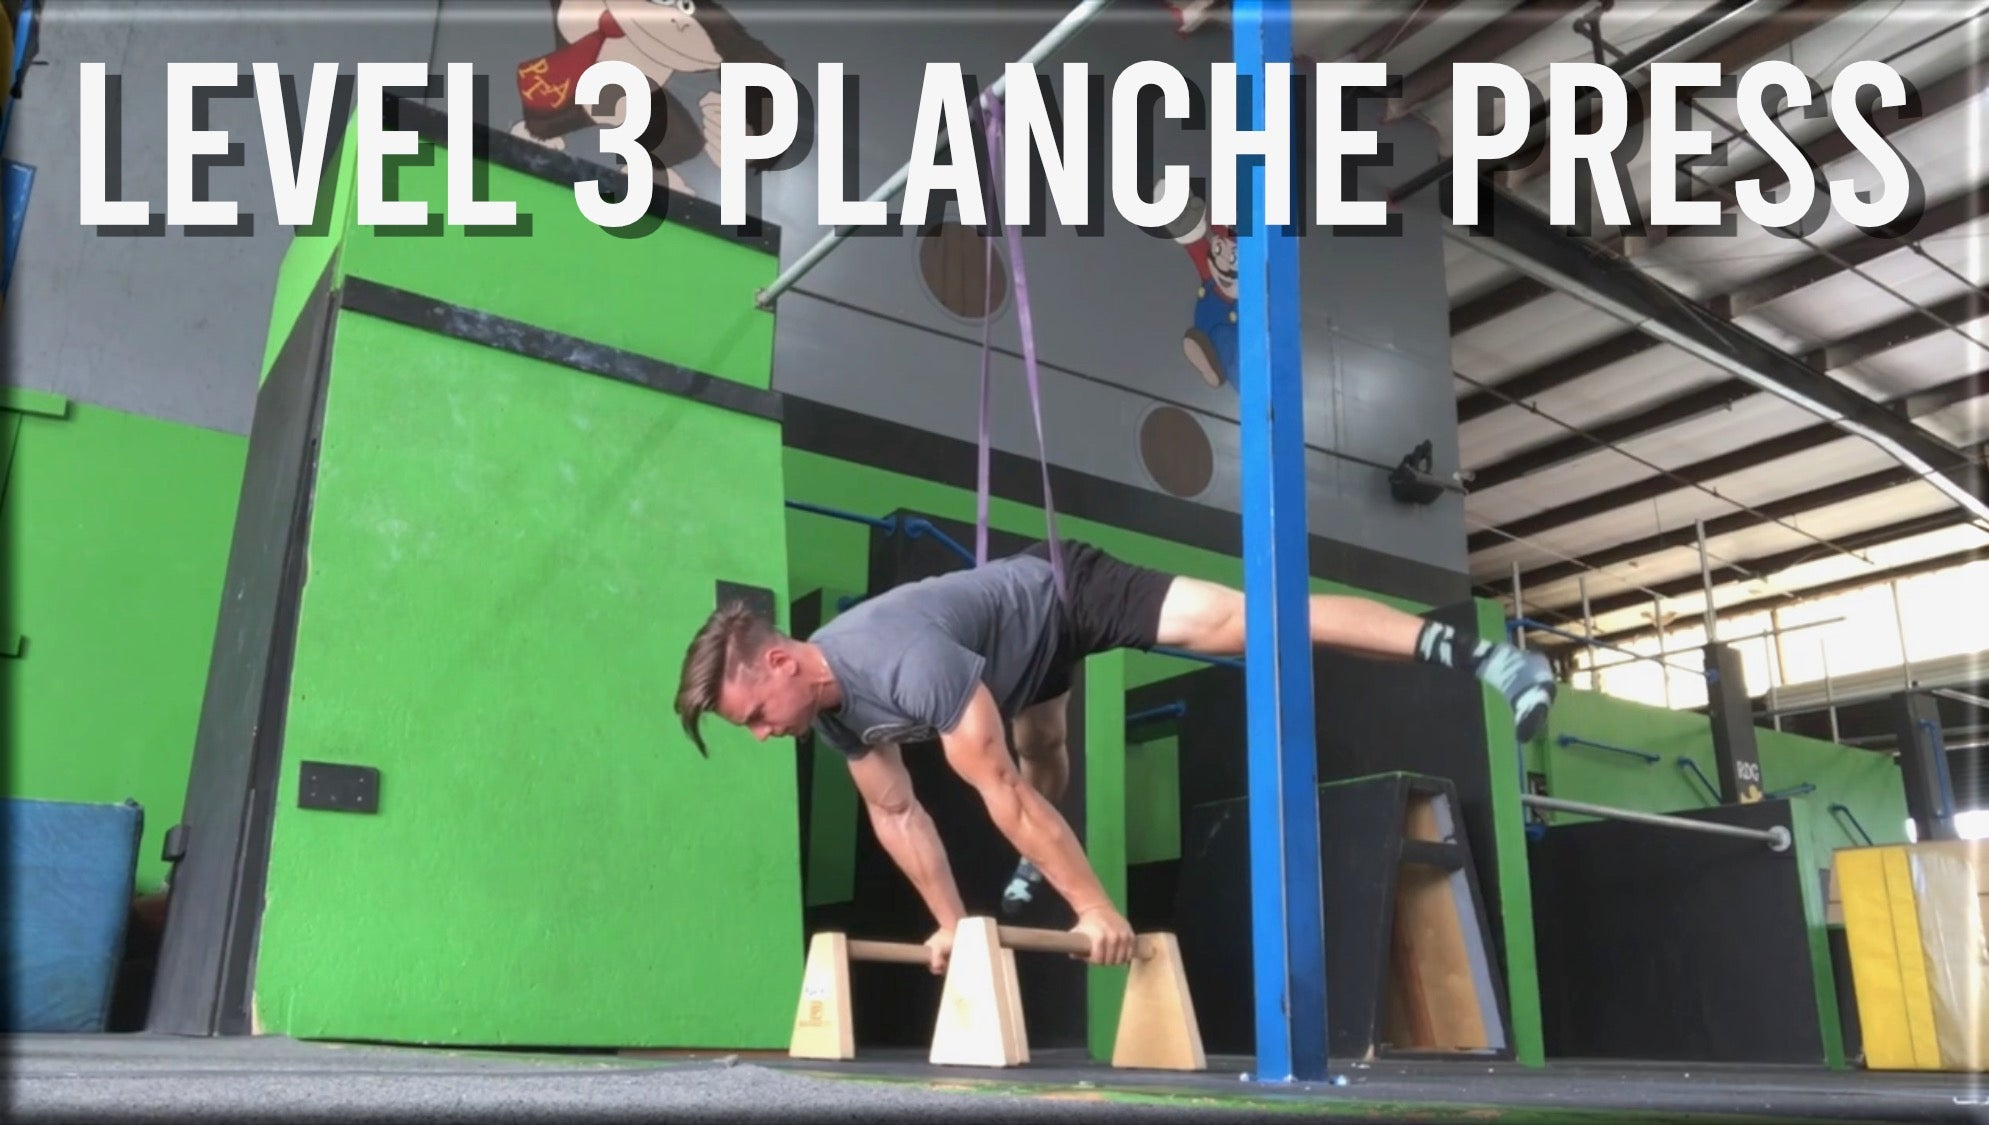 Level 3 Planche Press Workout